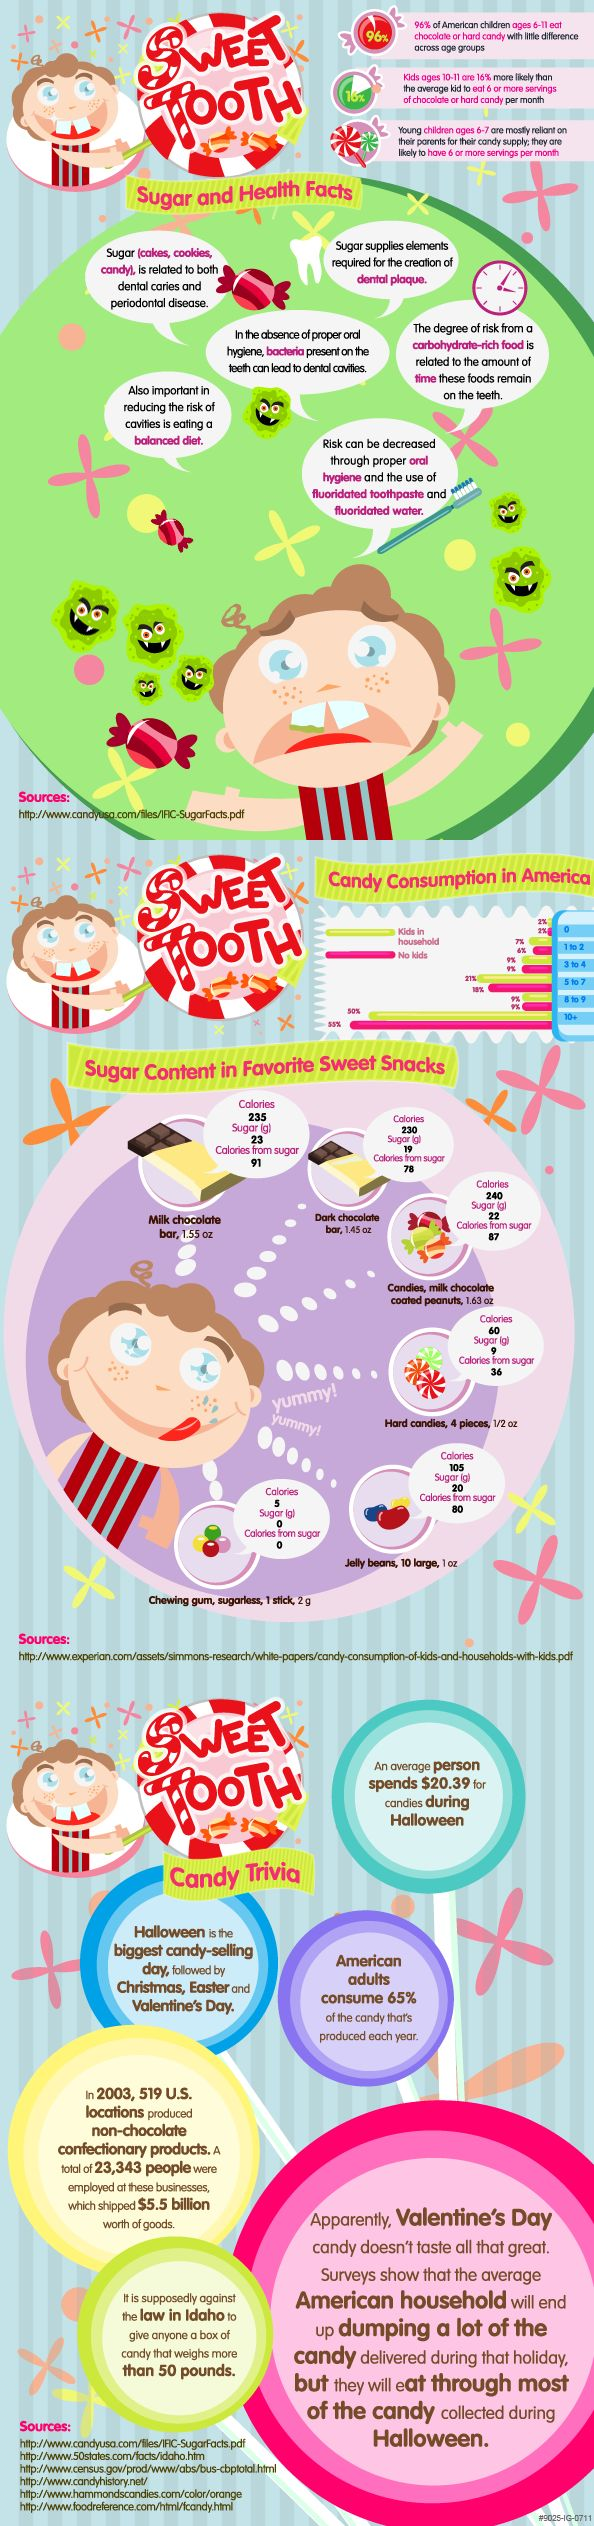 Everything you ever needed to know about candy and sugar